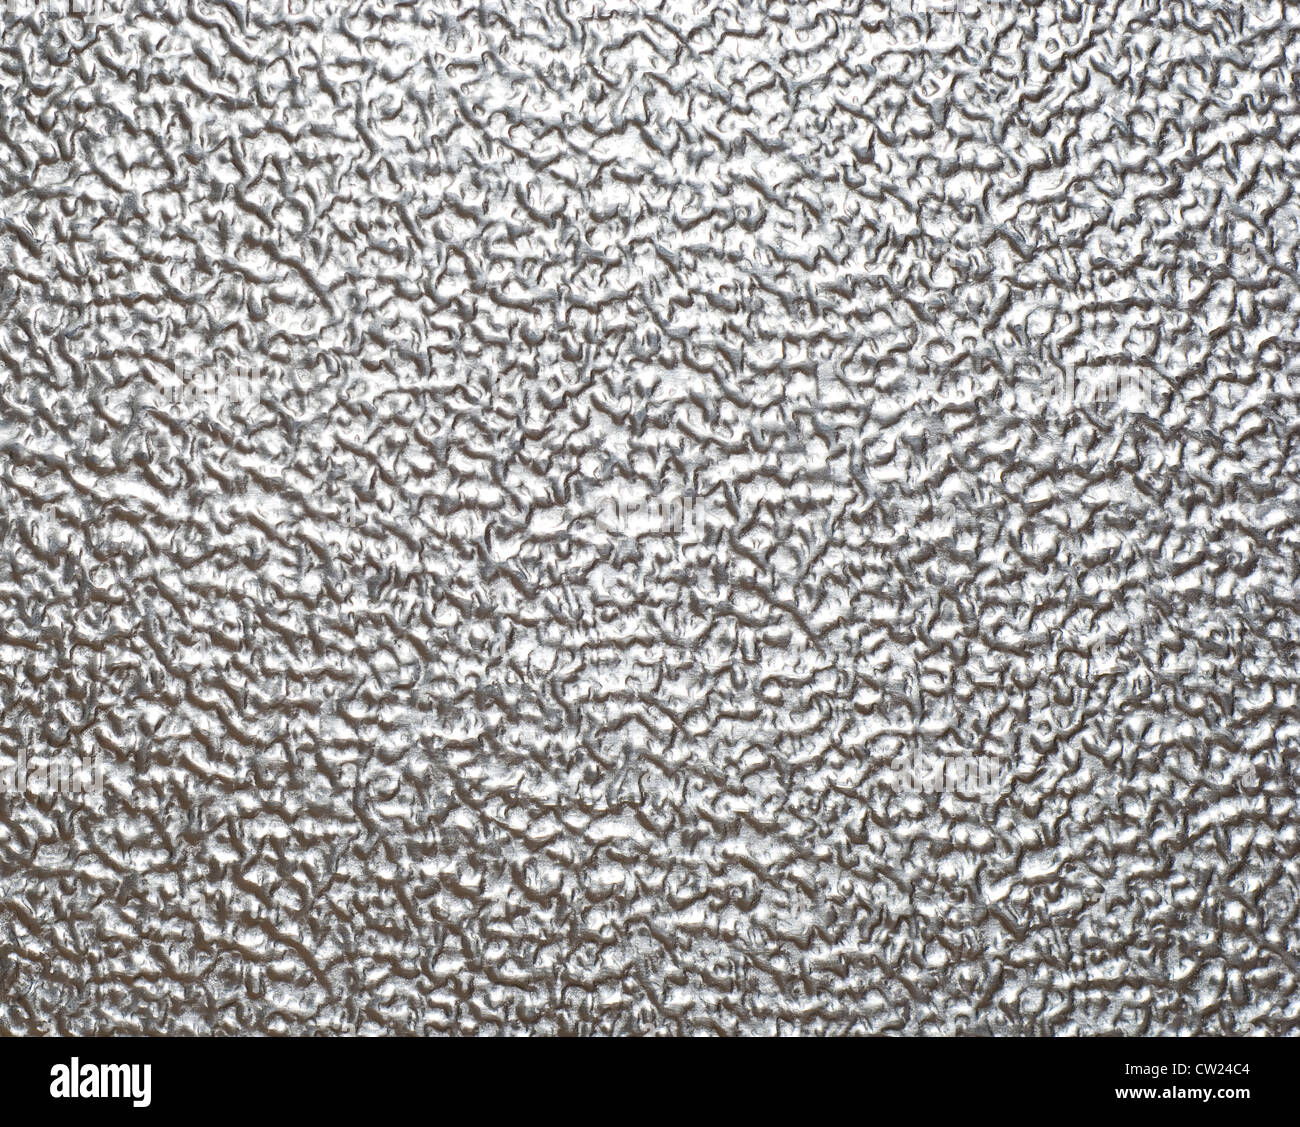 background abstract textured gray platinum metal pattern - Stock Image